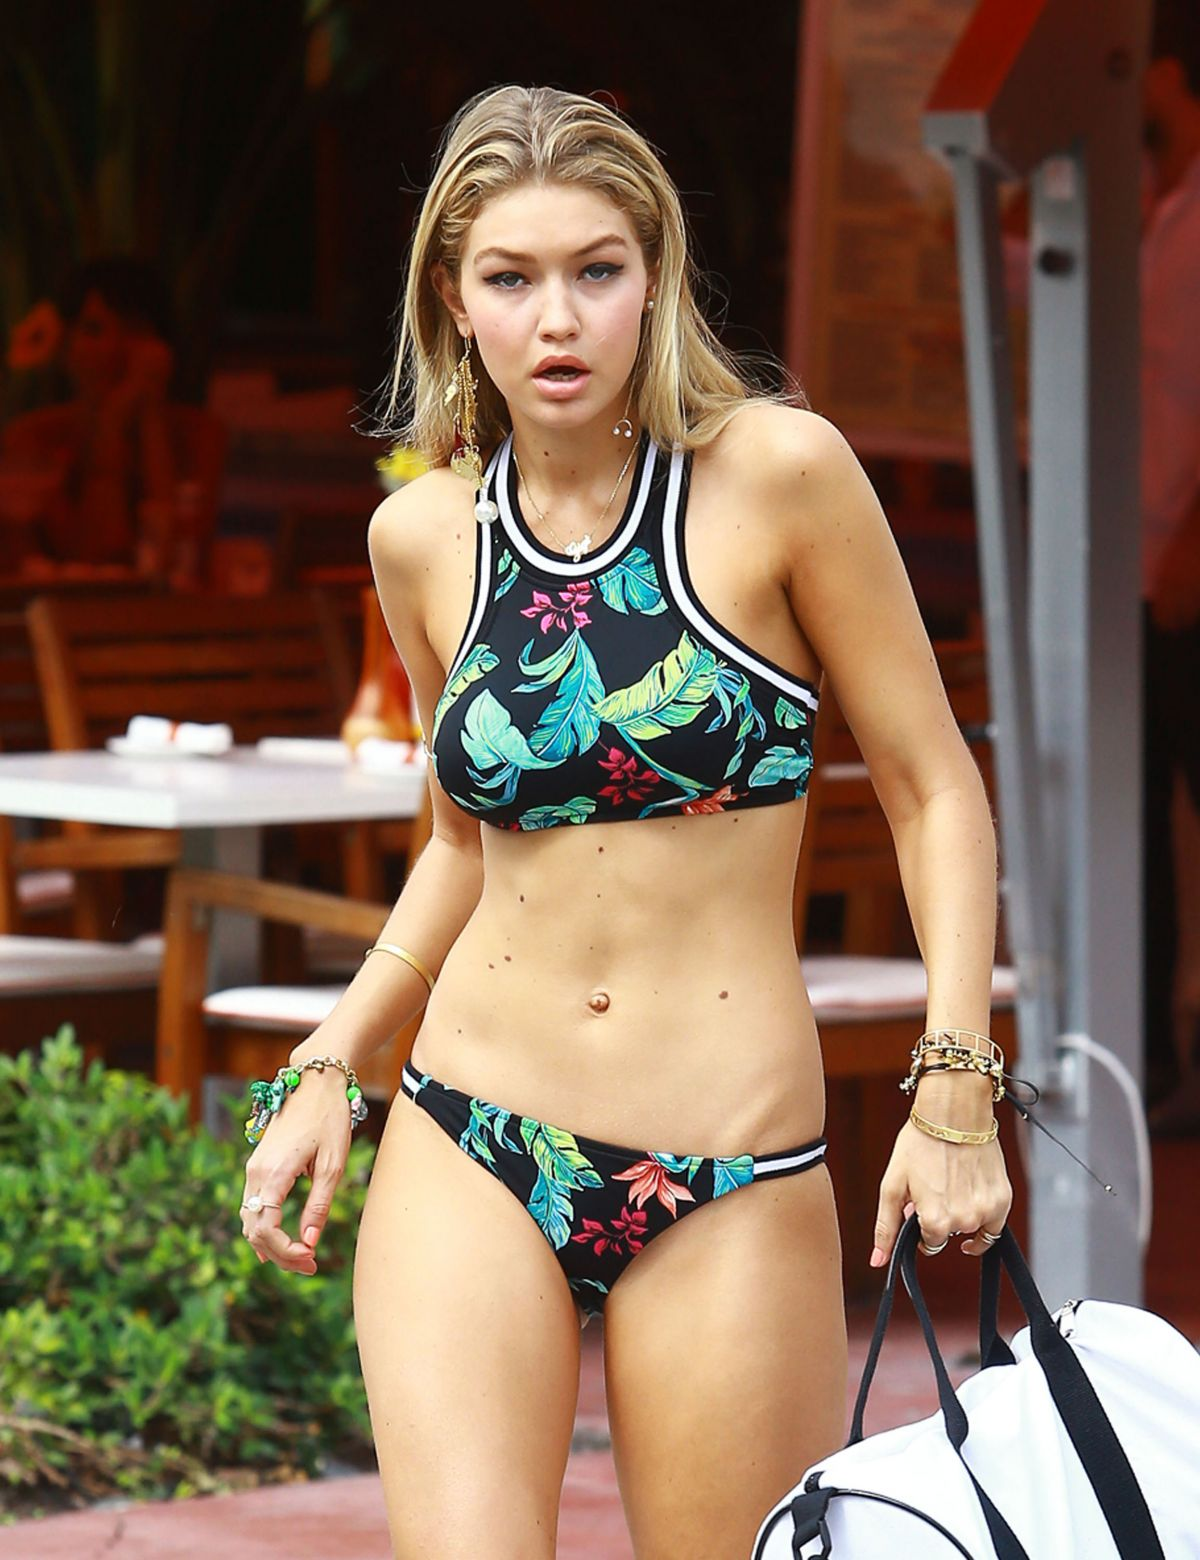 GIG HADID in Bikini on a Photoshoot in Miami 04/24/2015